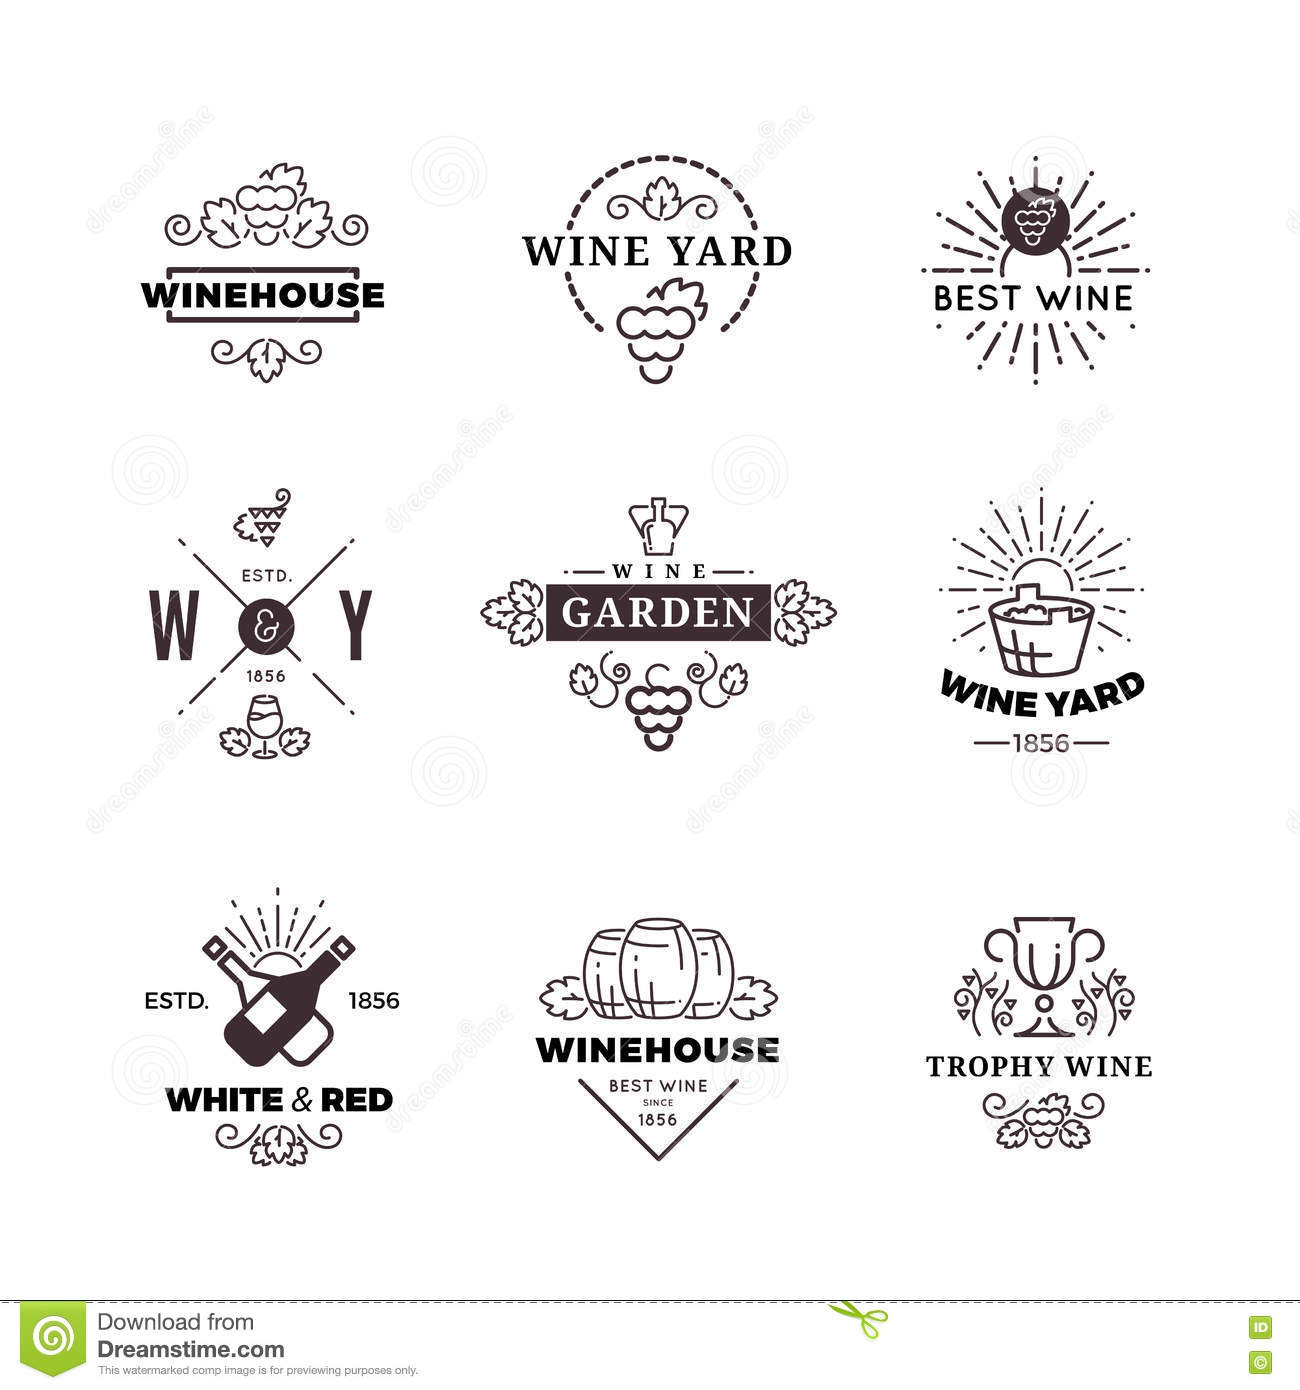 131026670382144850 furthermore List together with Stock Illustration Hipster Wine Making Grape Vector Labels Logos Emblems Set Illustration Image74999187 further 11029 as well 400 Square Feet 1 Bedrooms 1 Bathroom Adobe House Plans 0 Garage 13067. on or style house plans